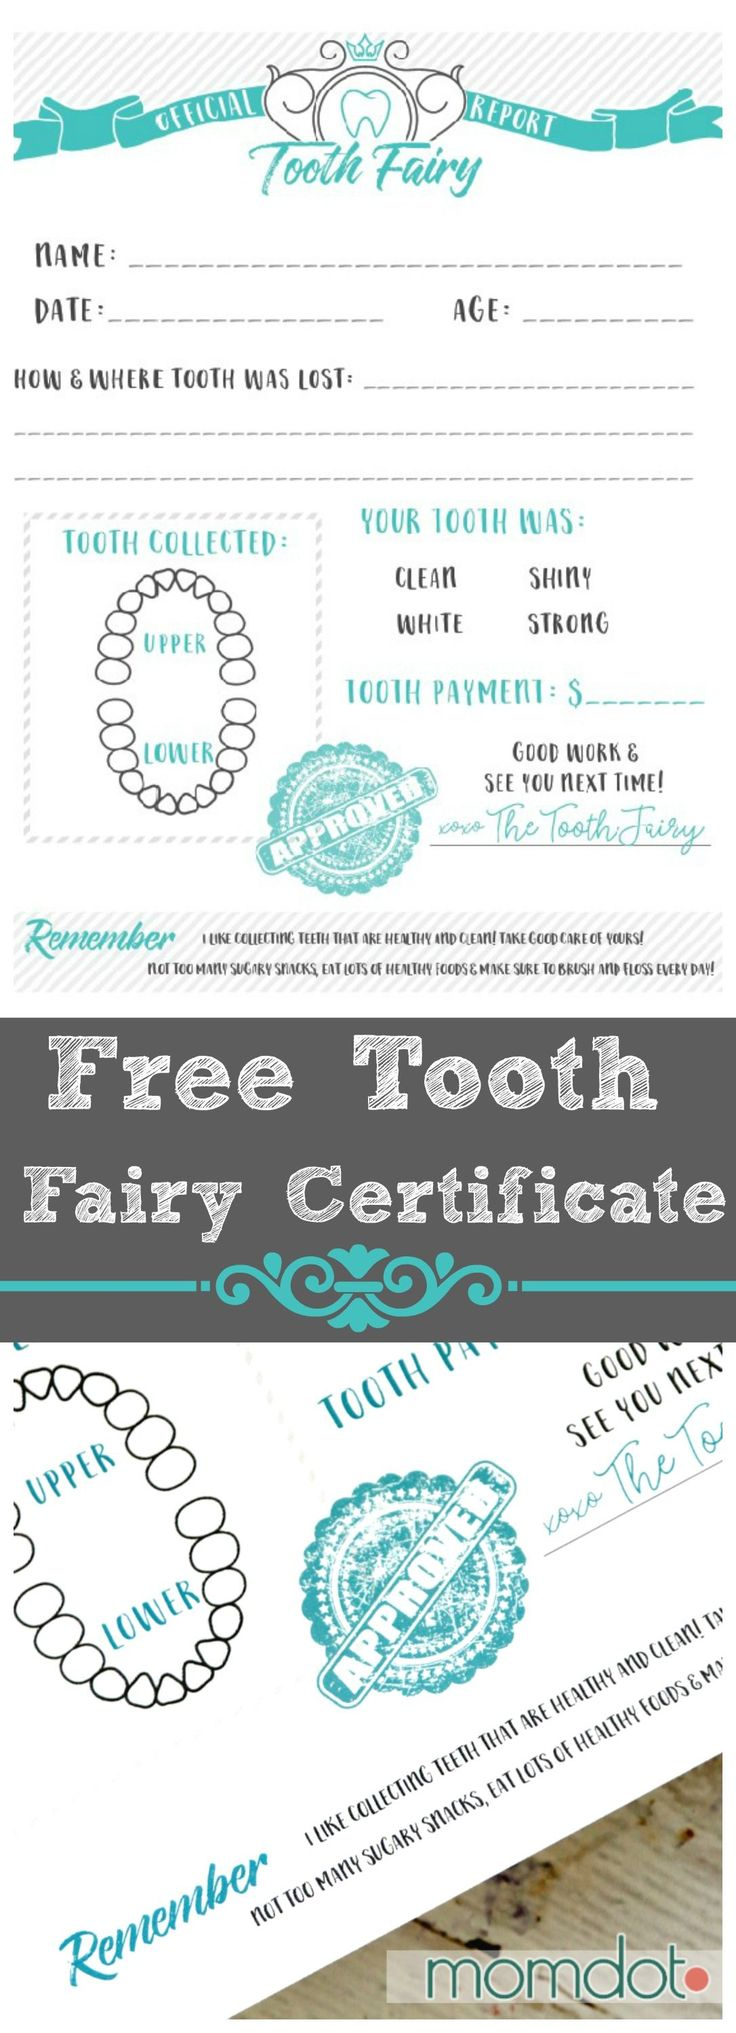 Tooth Fairy Printable Certificate - Free Printable Letter from the Tooth Fairy, instant print out and adorable for kids!